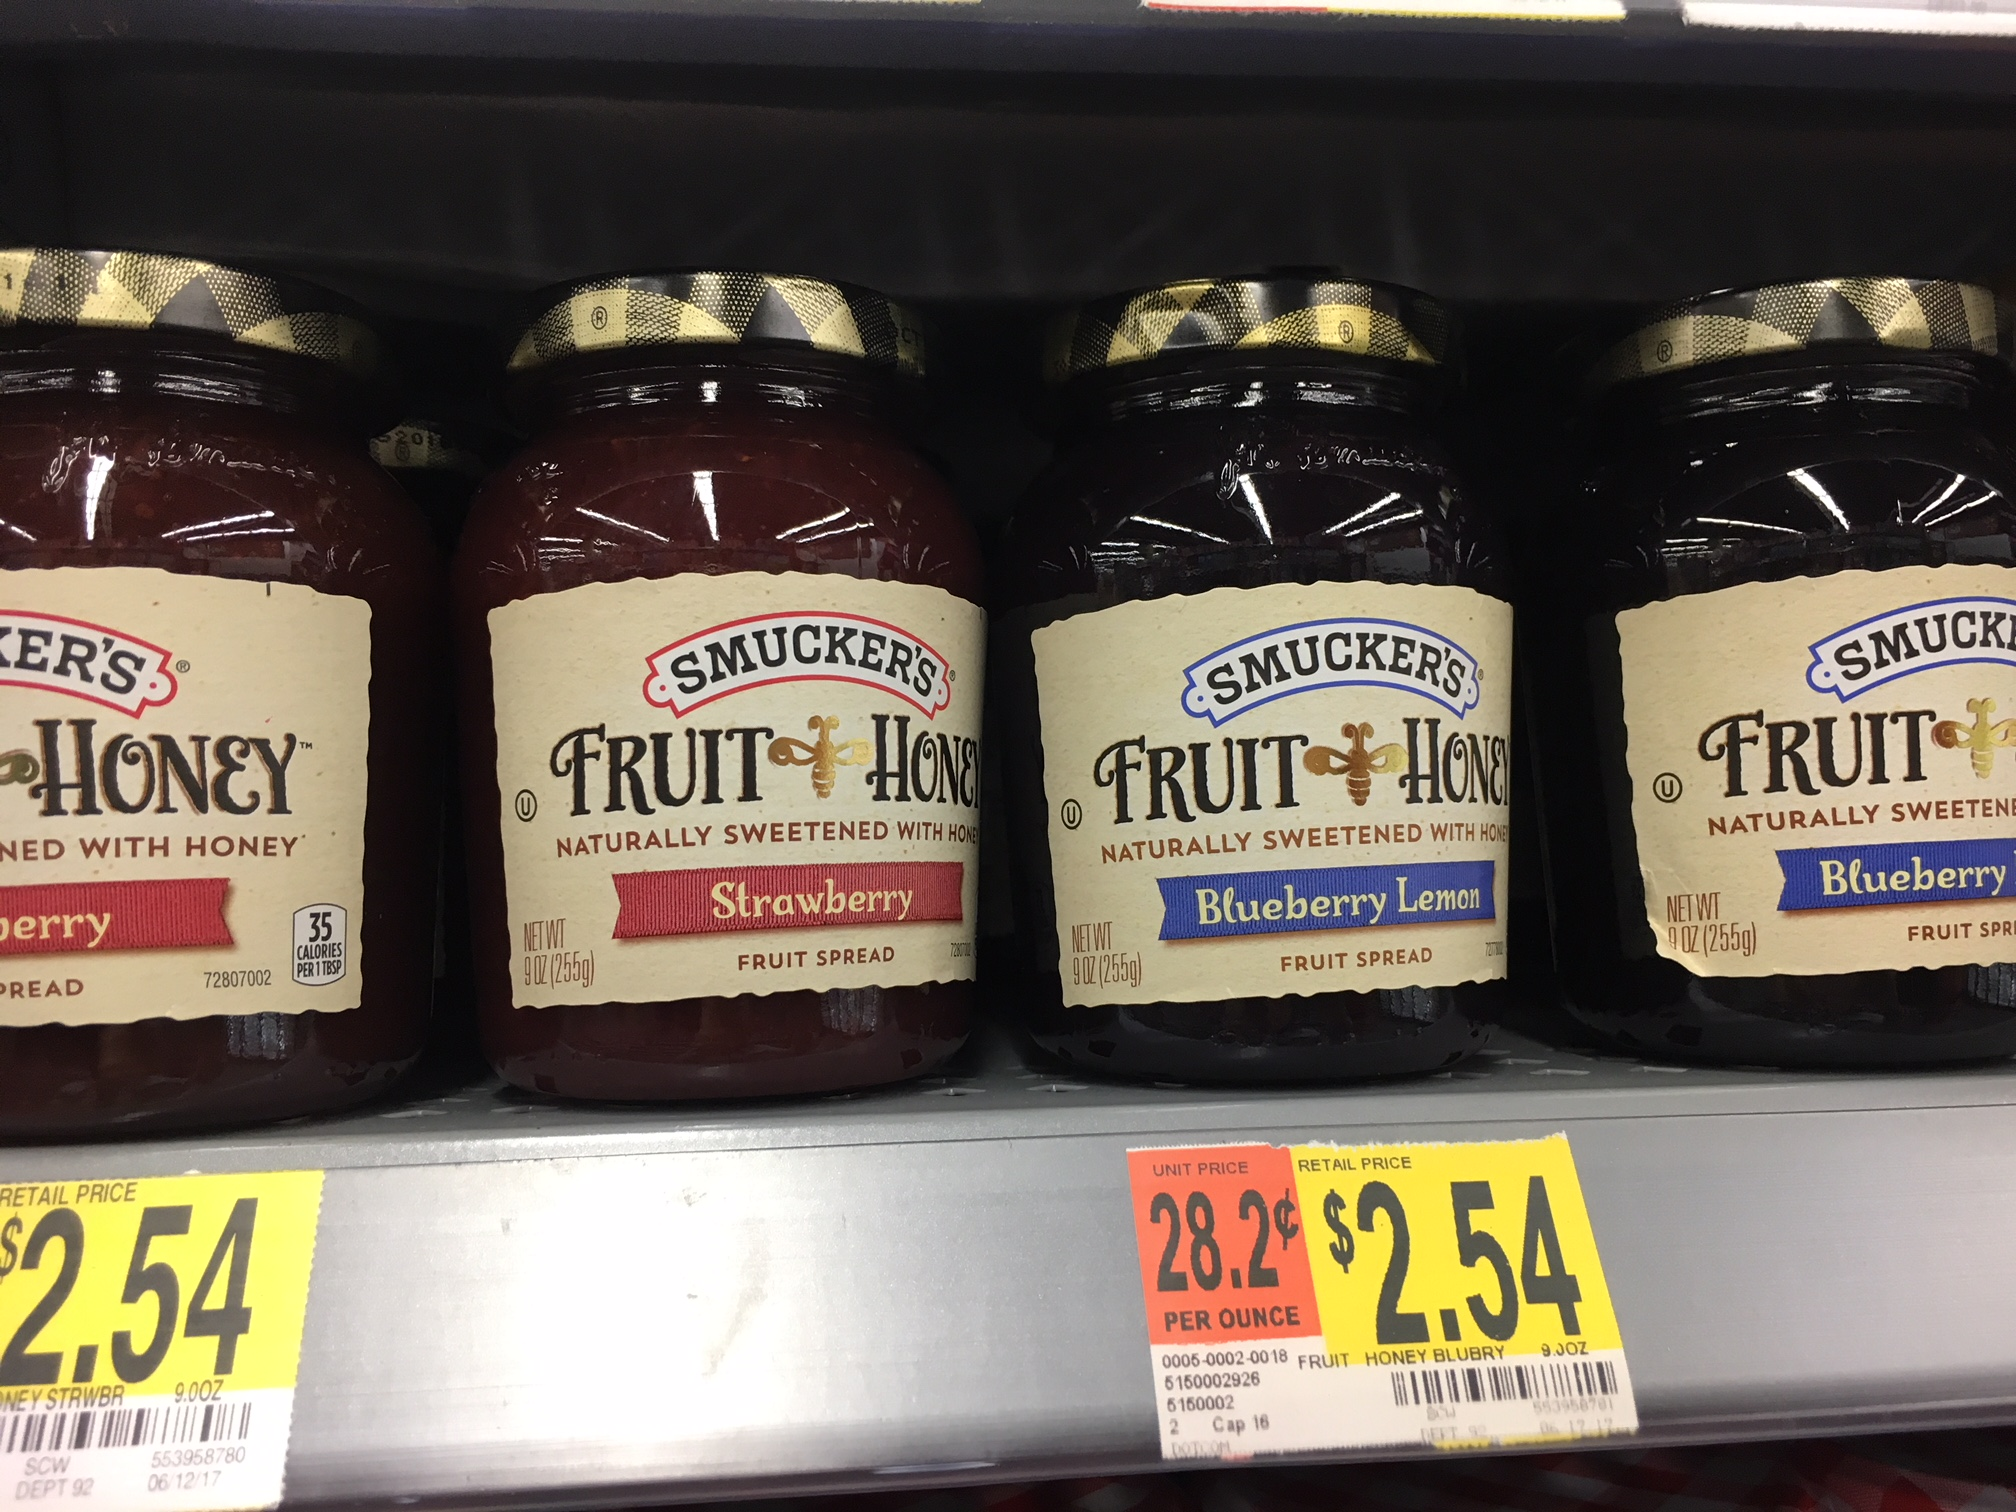 Smuckers Fruit and Honey